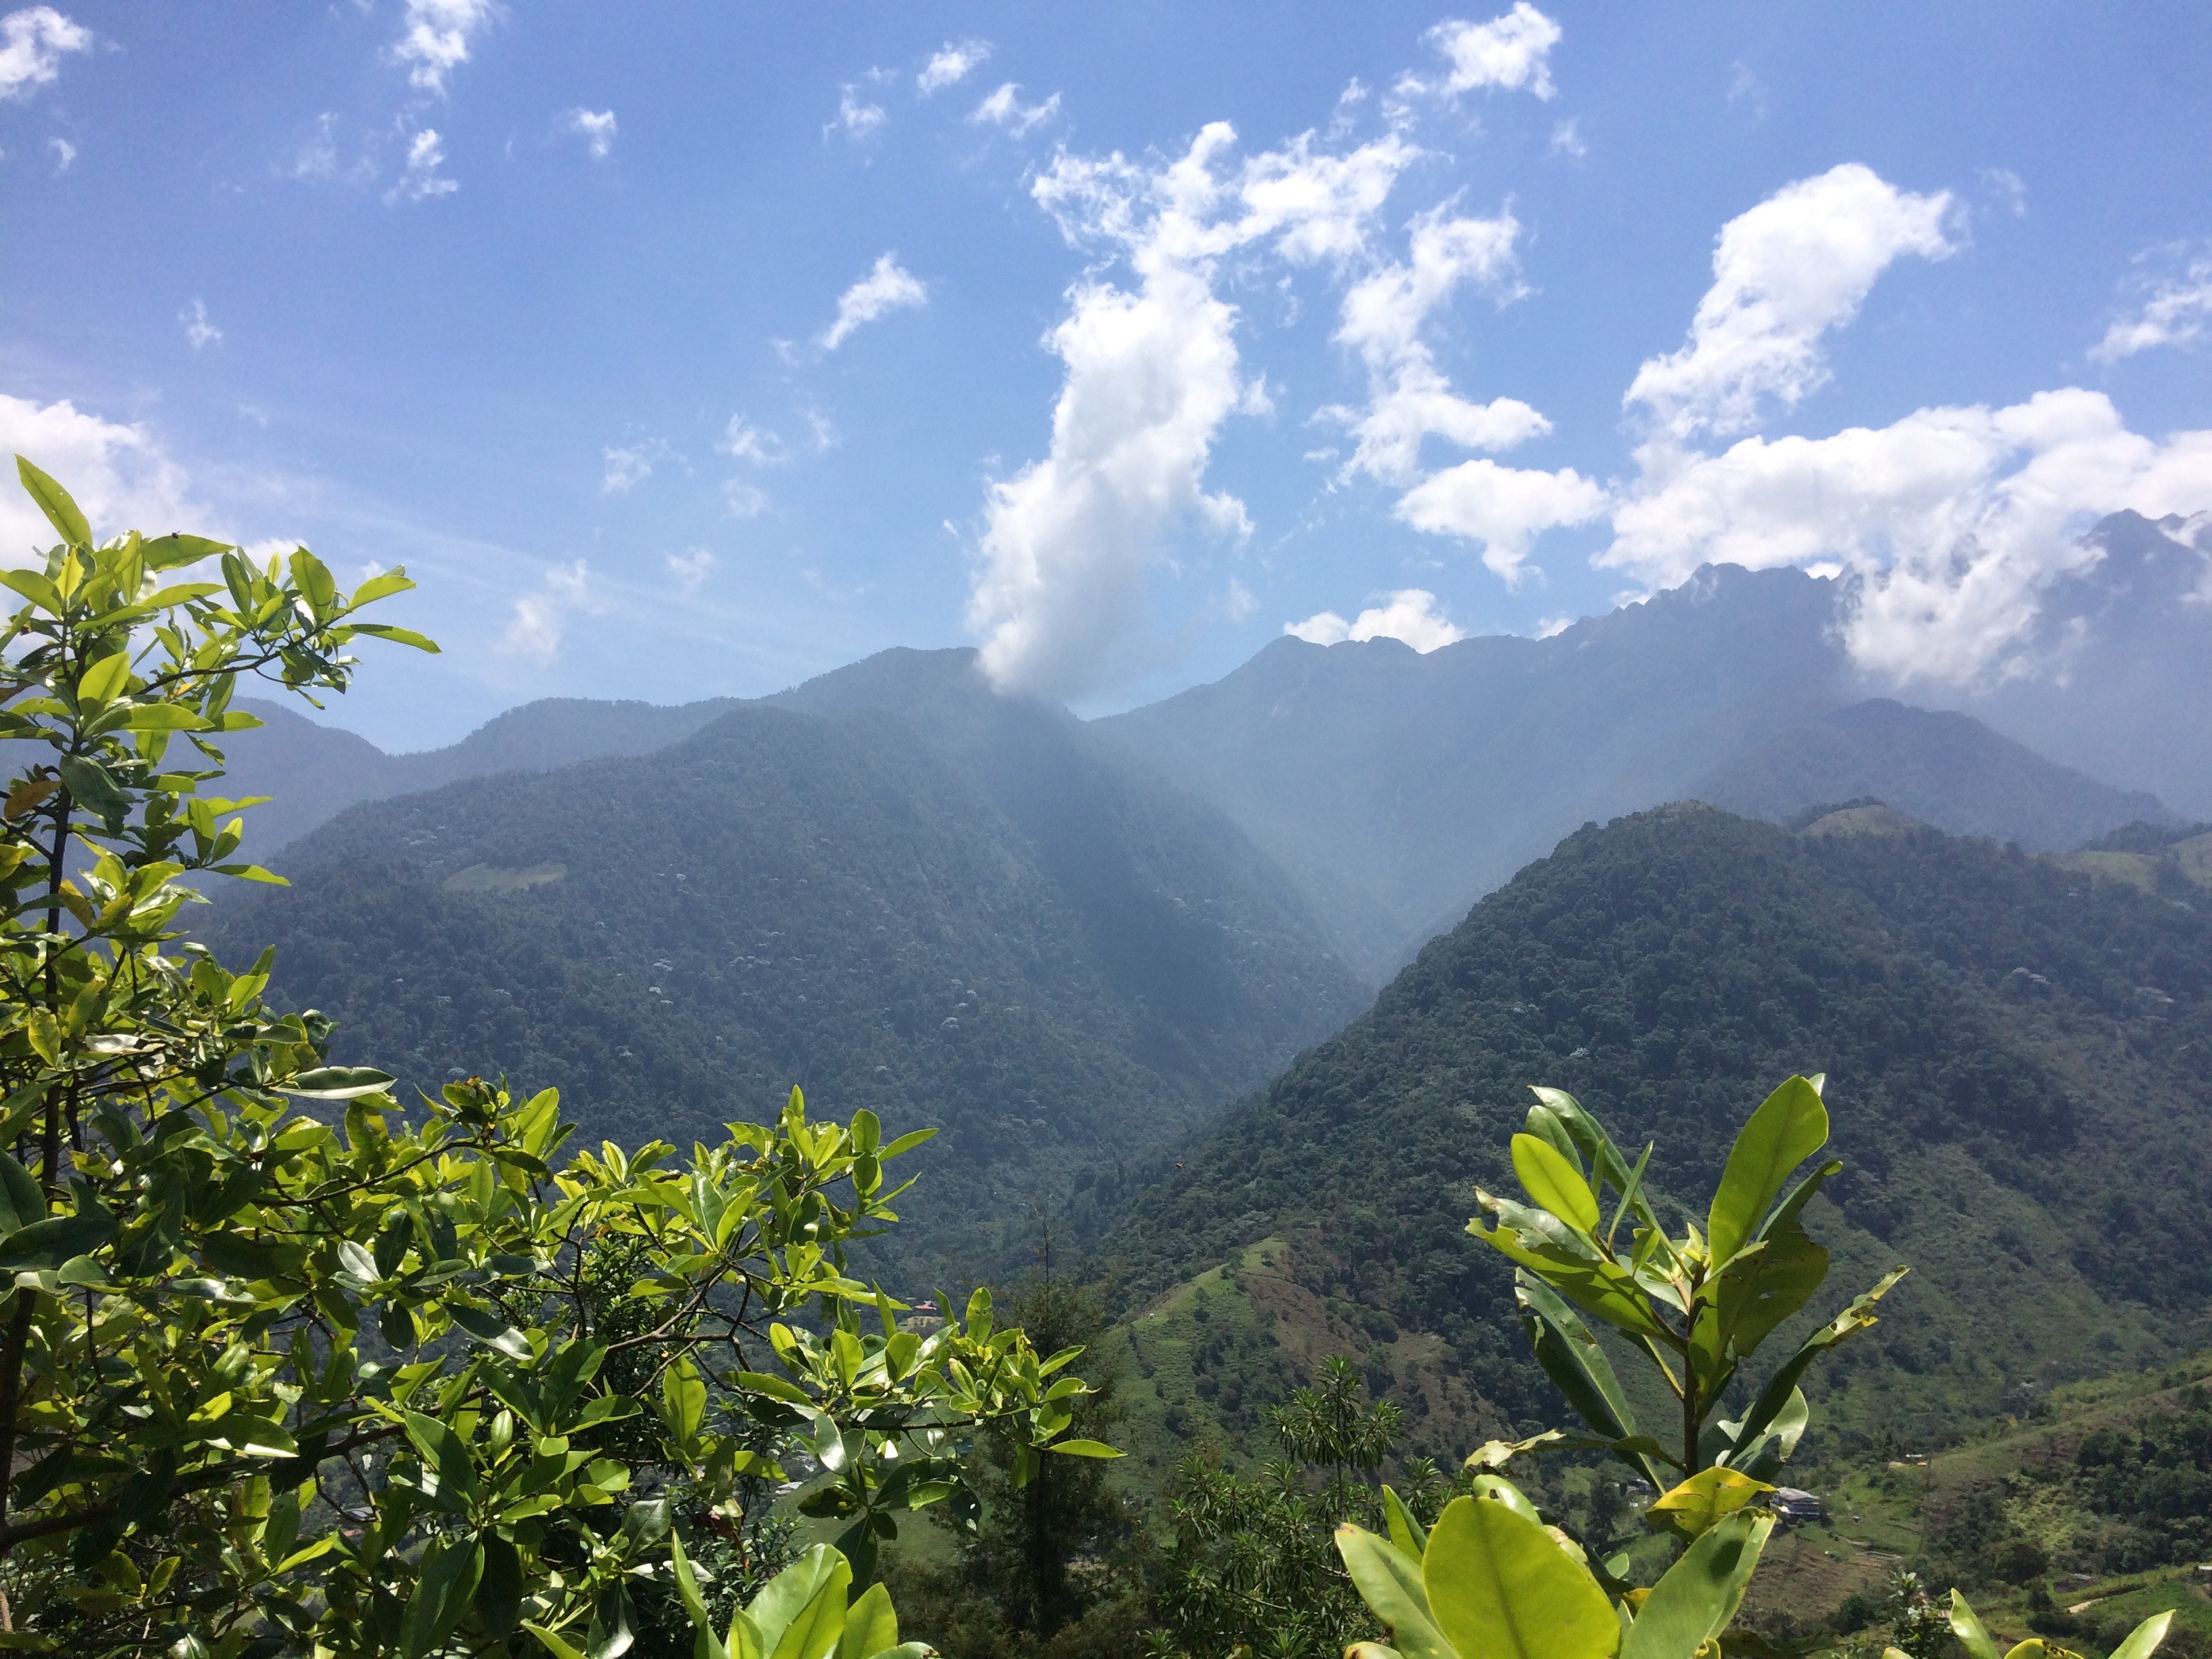 mountains in Cali, Colombia